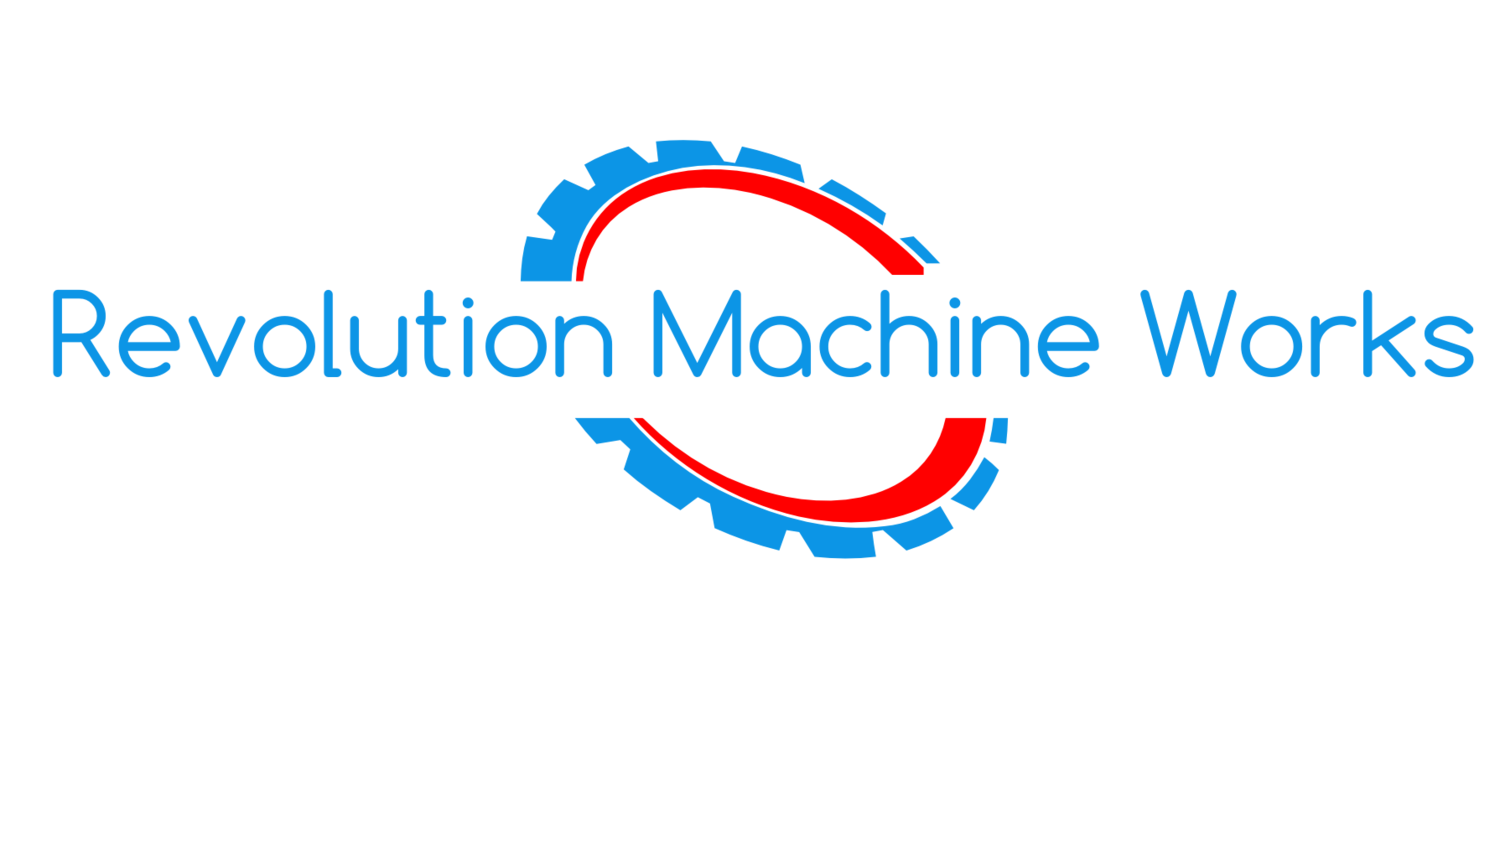 Revolution Machine Works